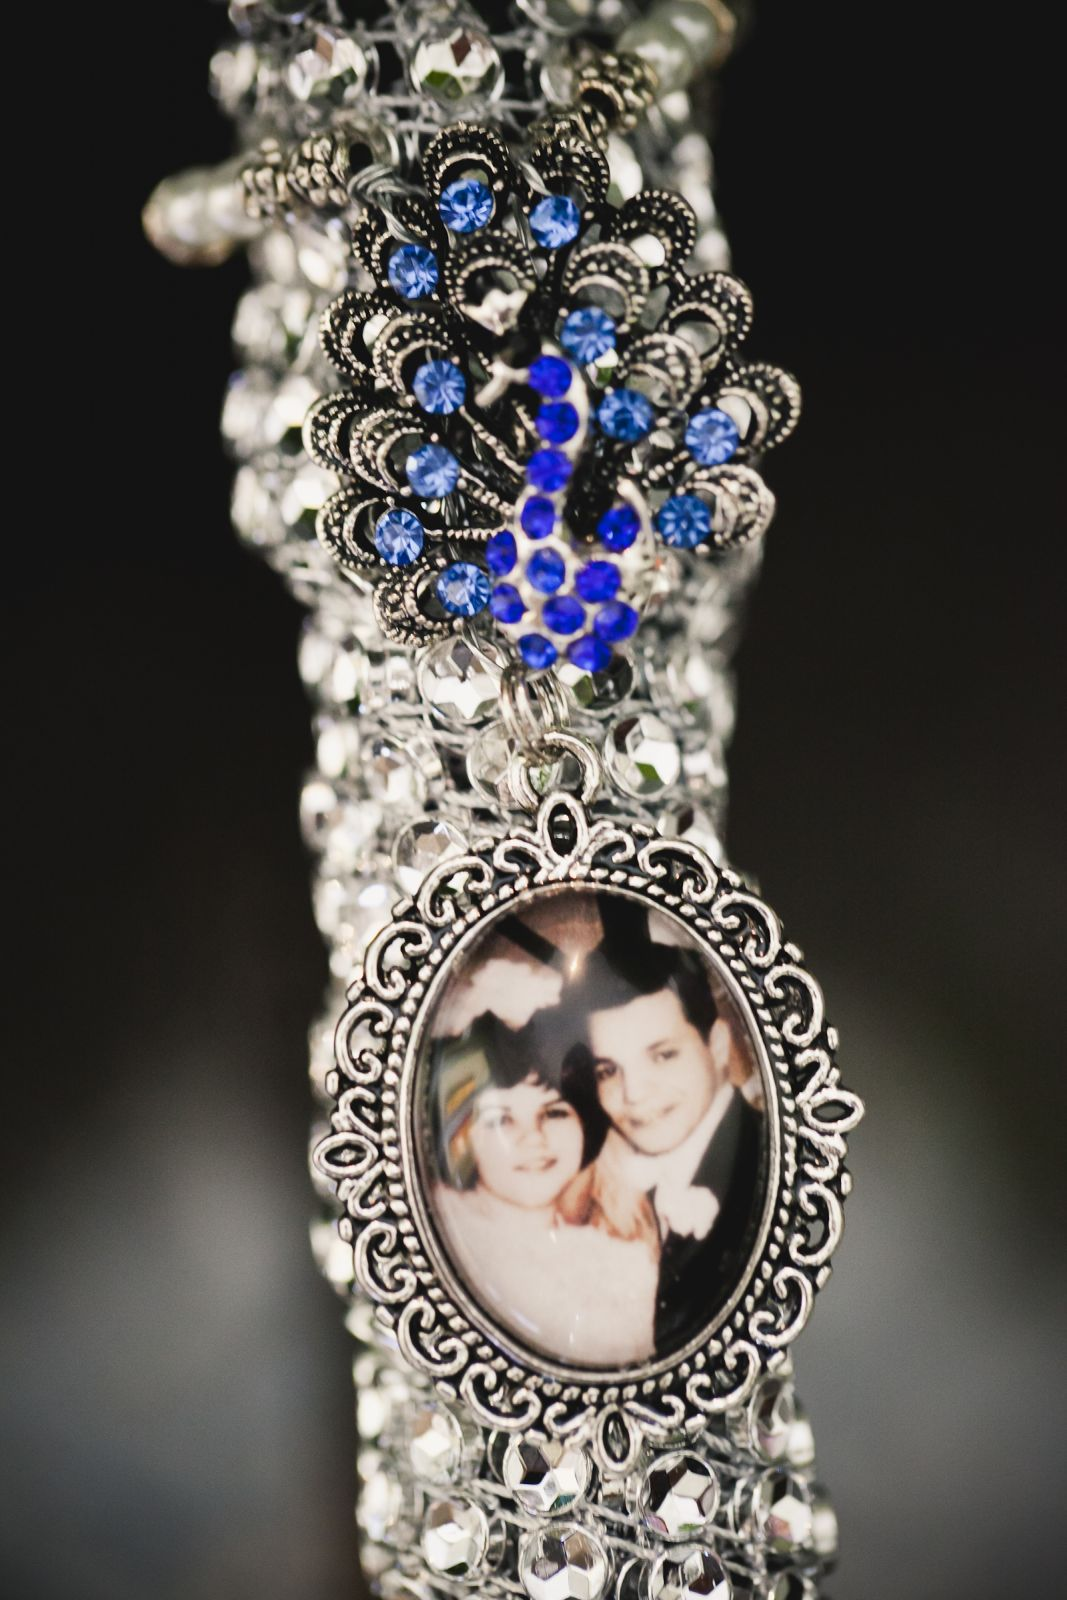 My something old- my grandparents wedding picture in a peacock charm hanging from my bouquet